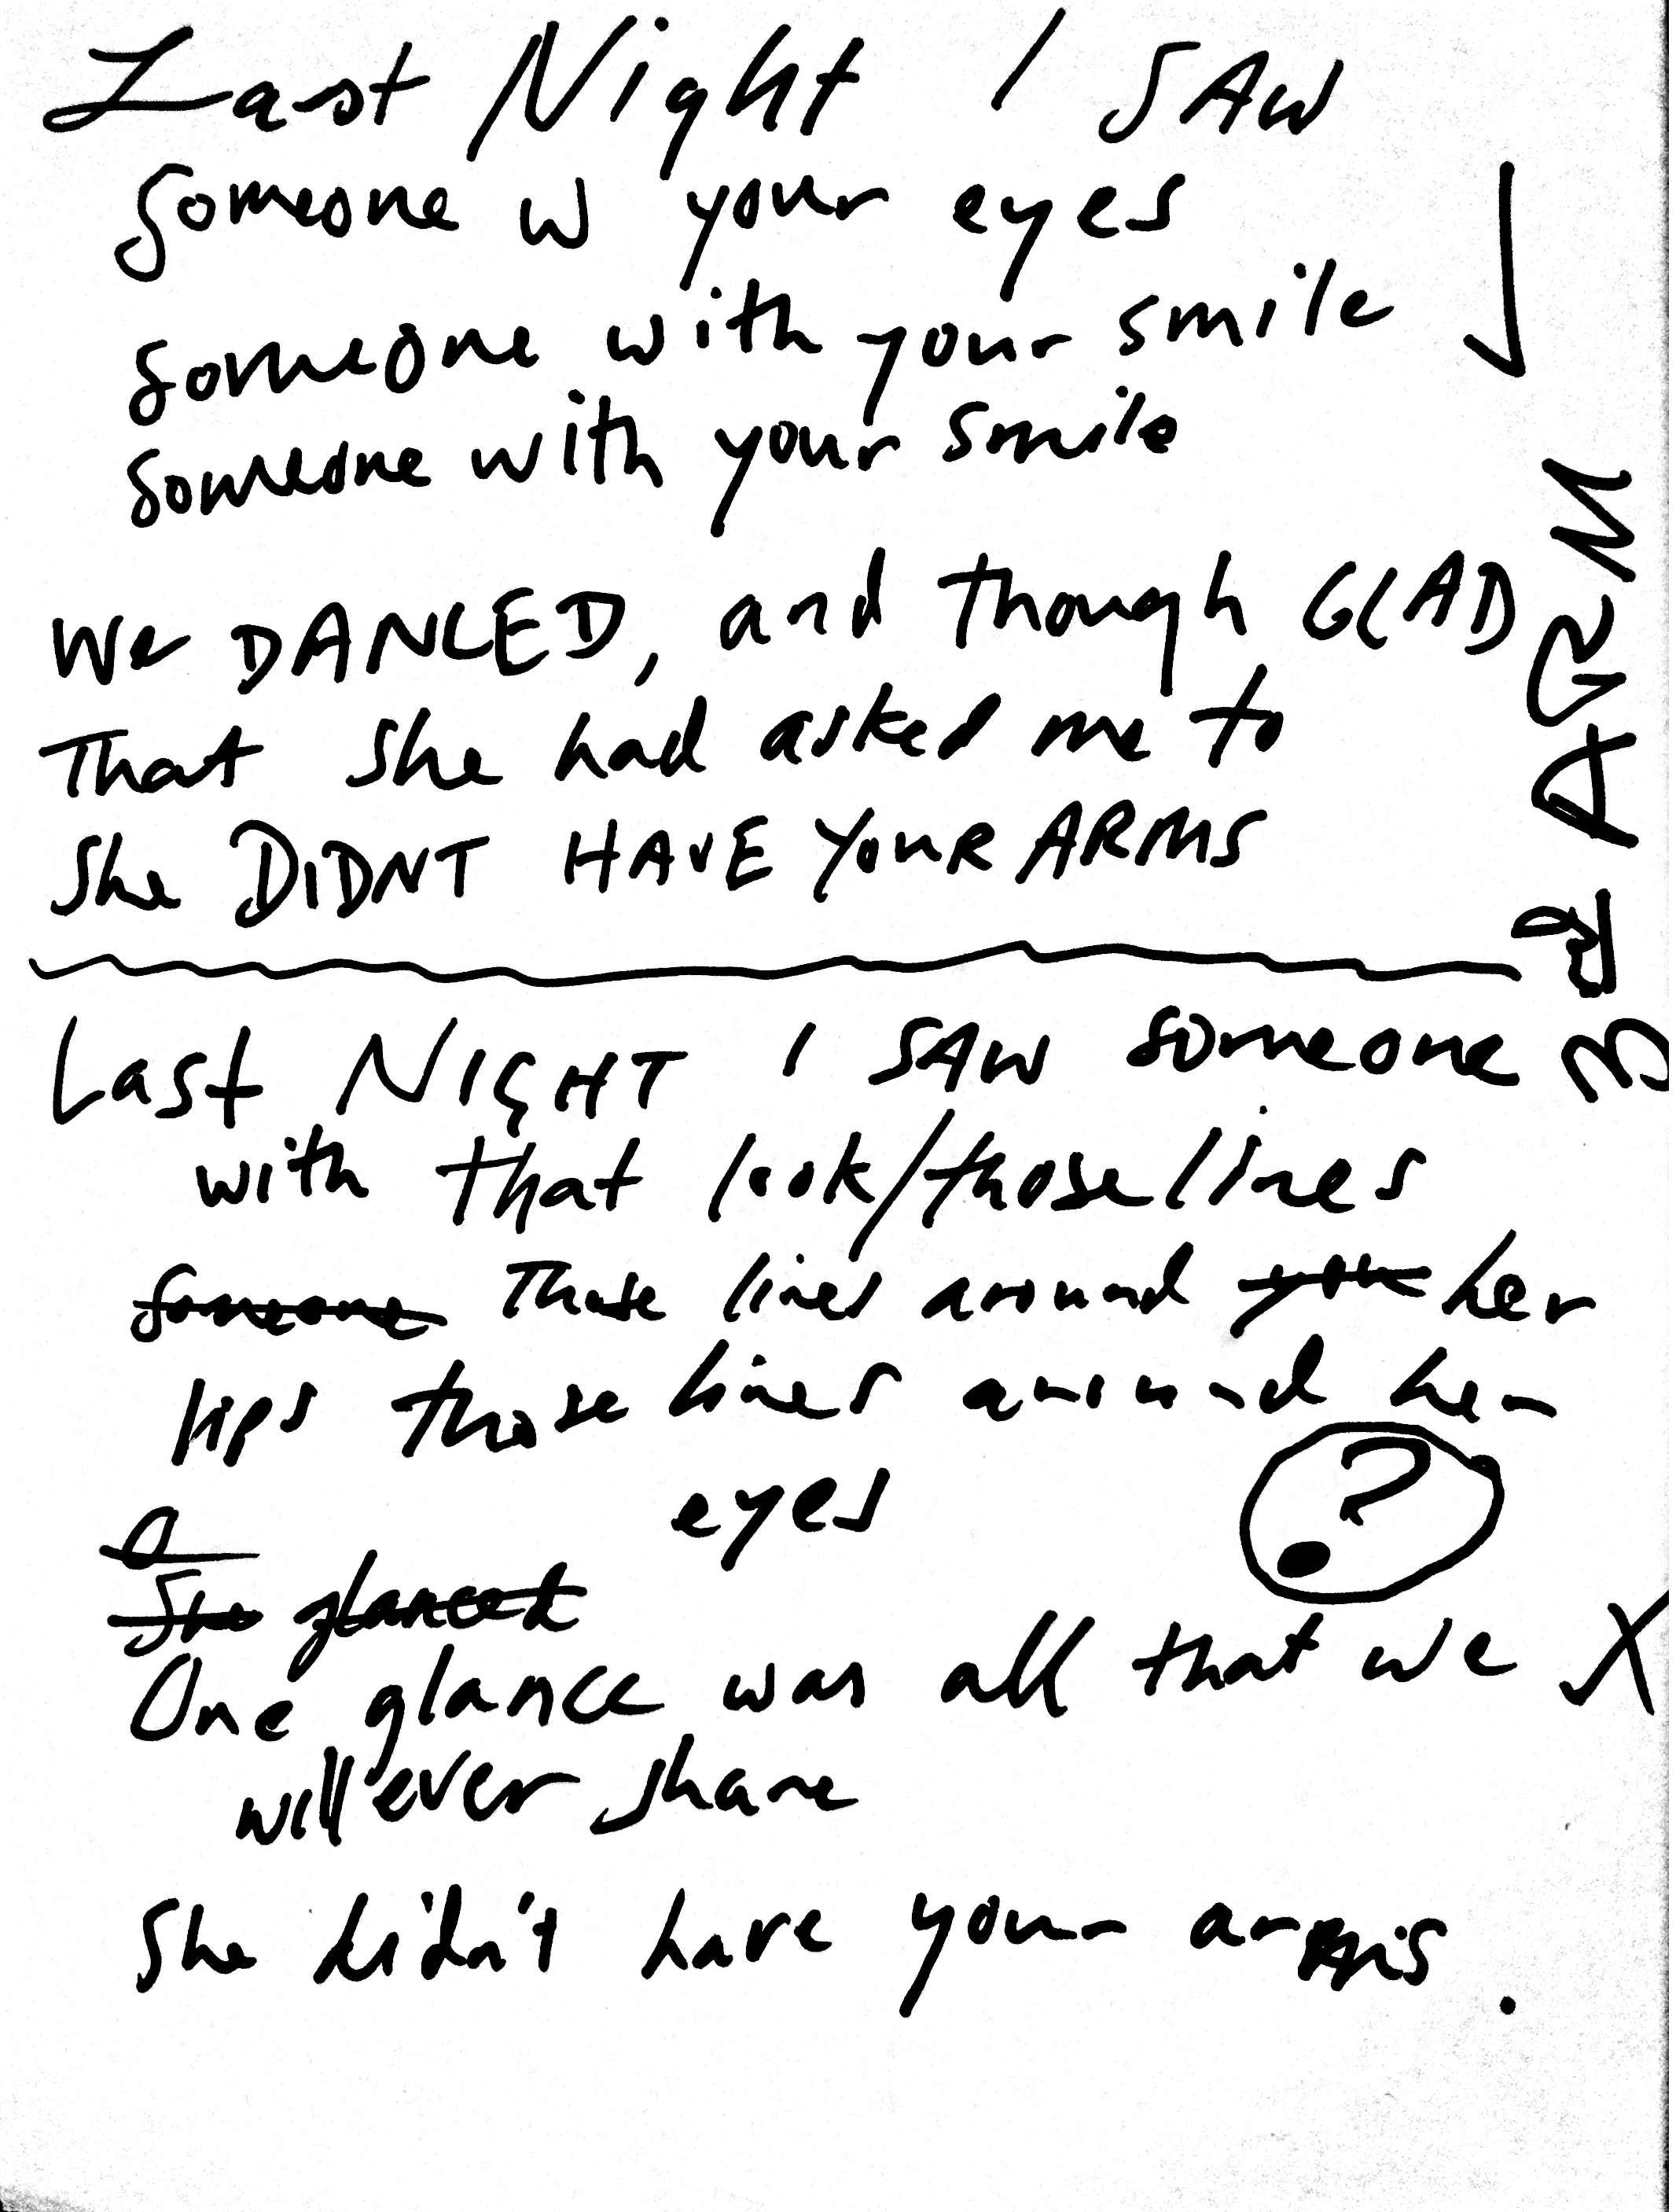 01 Third Arm Lyrics